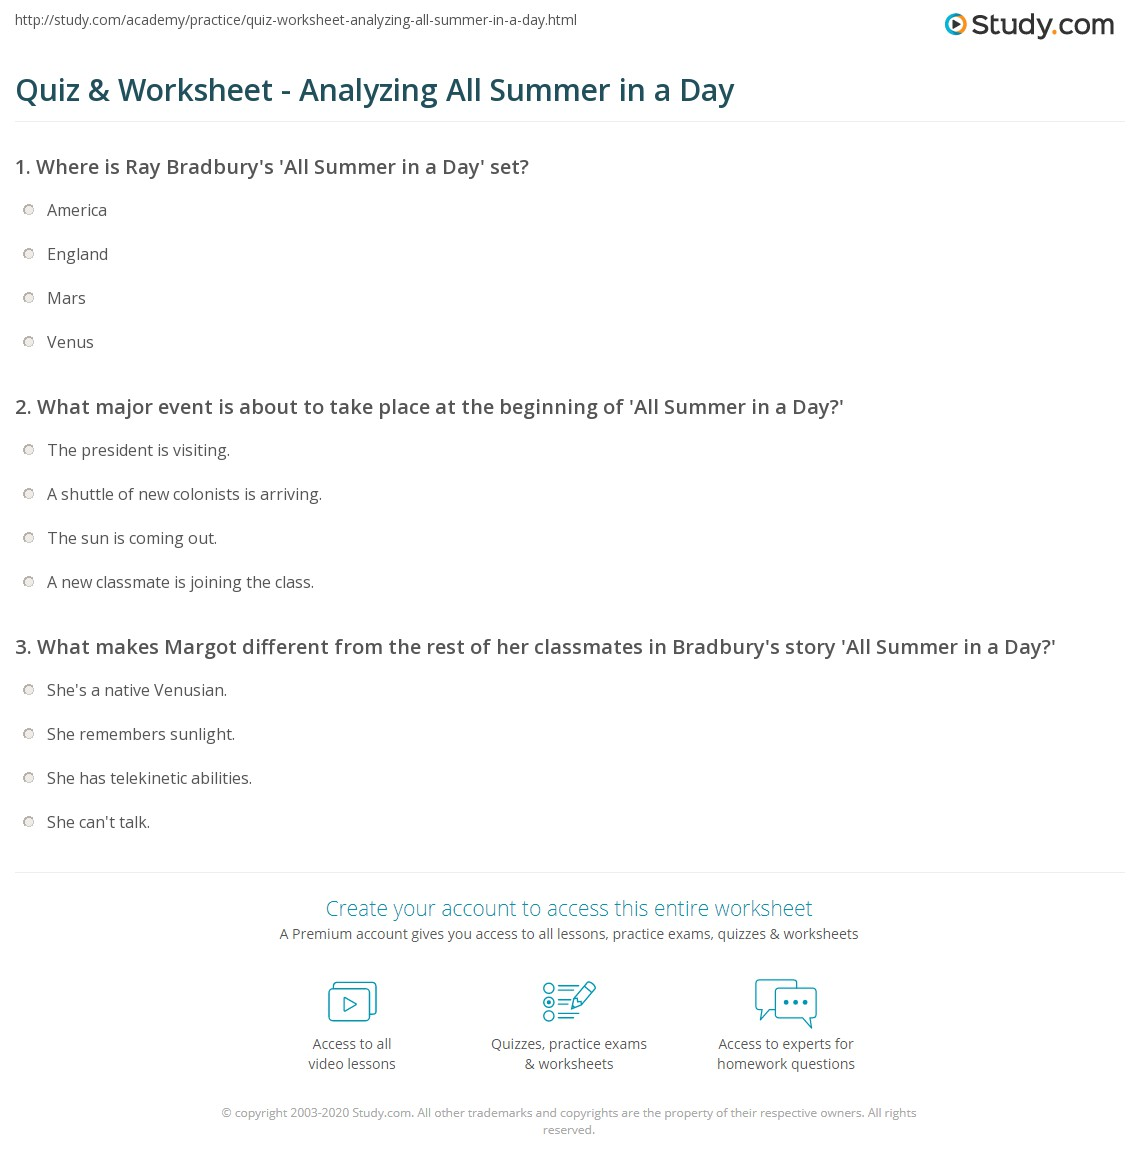 all summer in a day ray bradbury essay essay quiz worksheet yzing all summer in a day study com